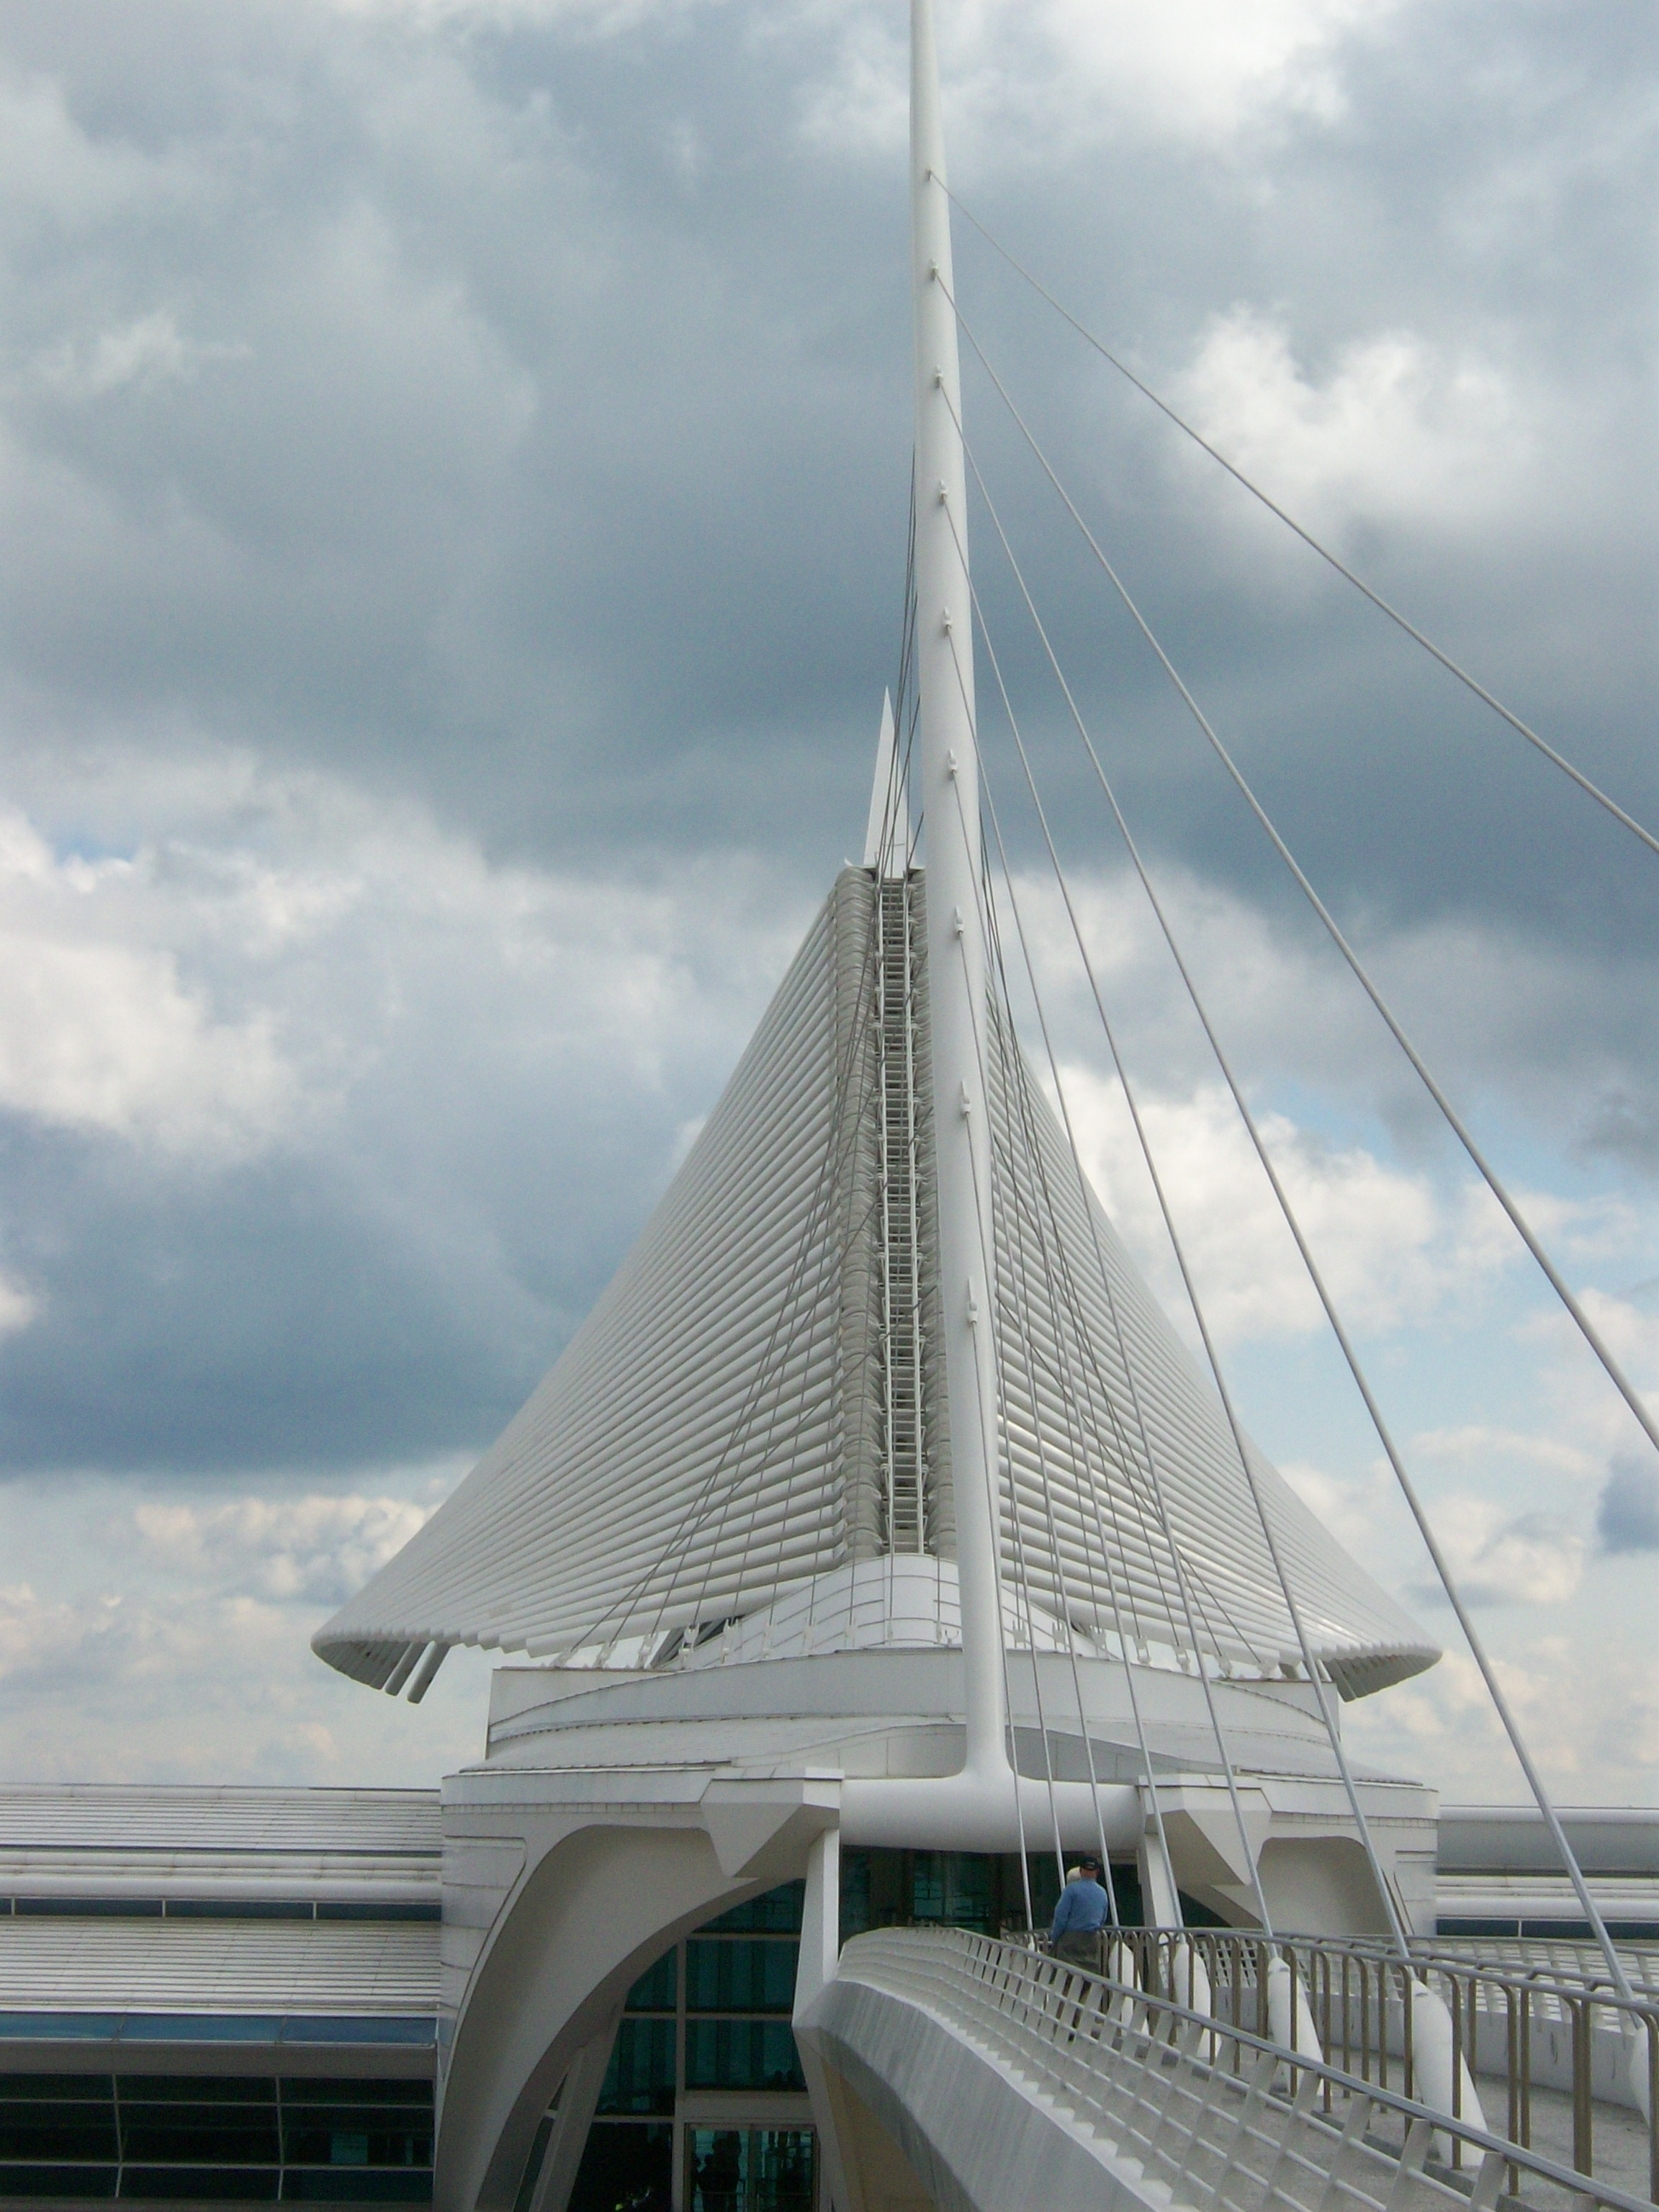 Calatrava's Milwaukee Art Museum With the Wings Almost Completely Lowered